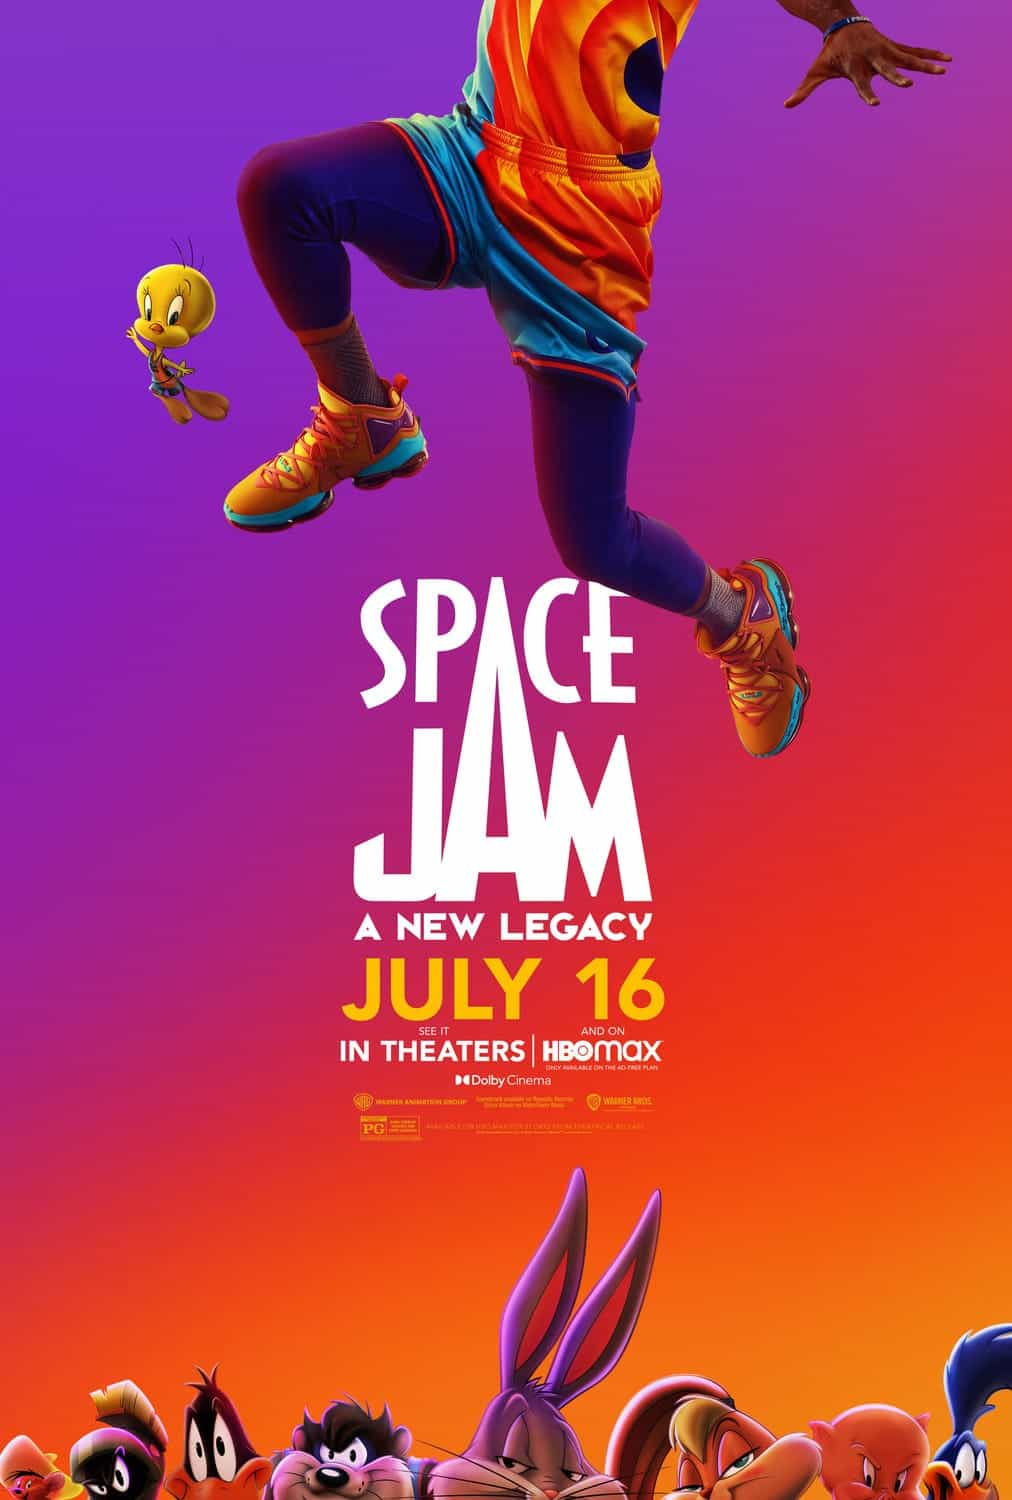 LeBron James and Bugs Bunny star in the first trailer for Space jam: A New Legacy